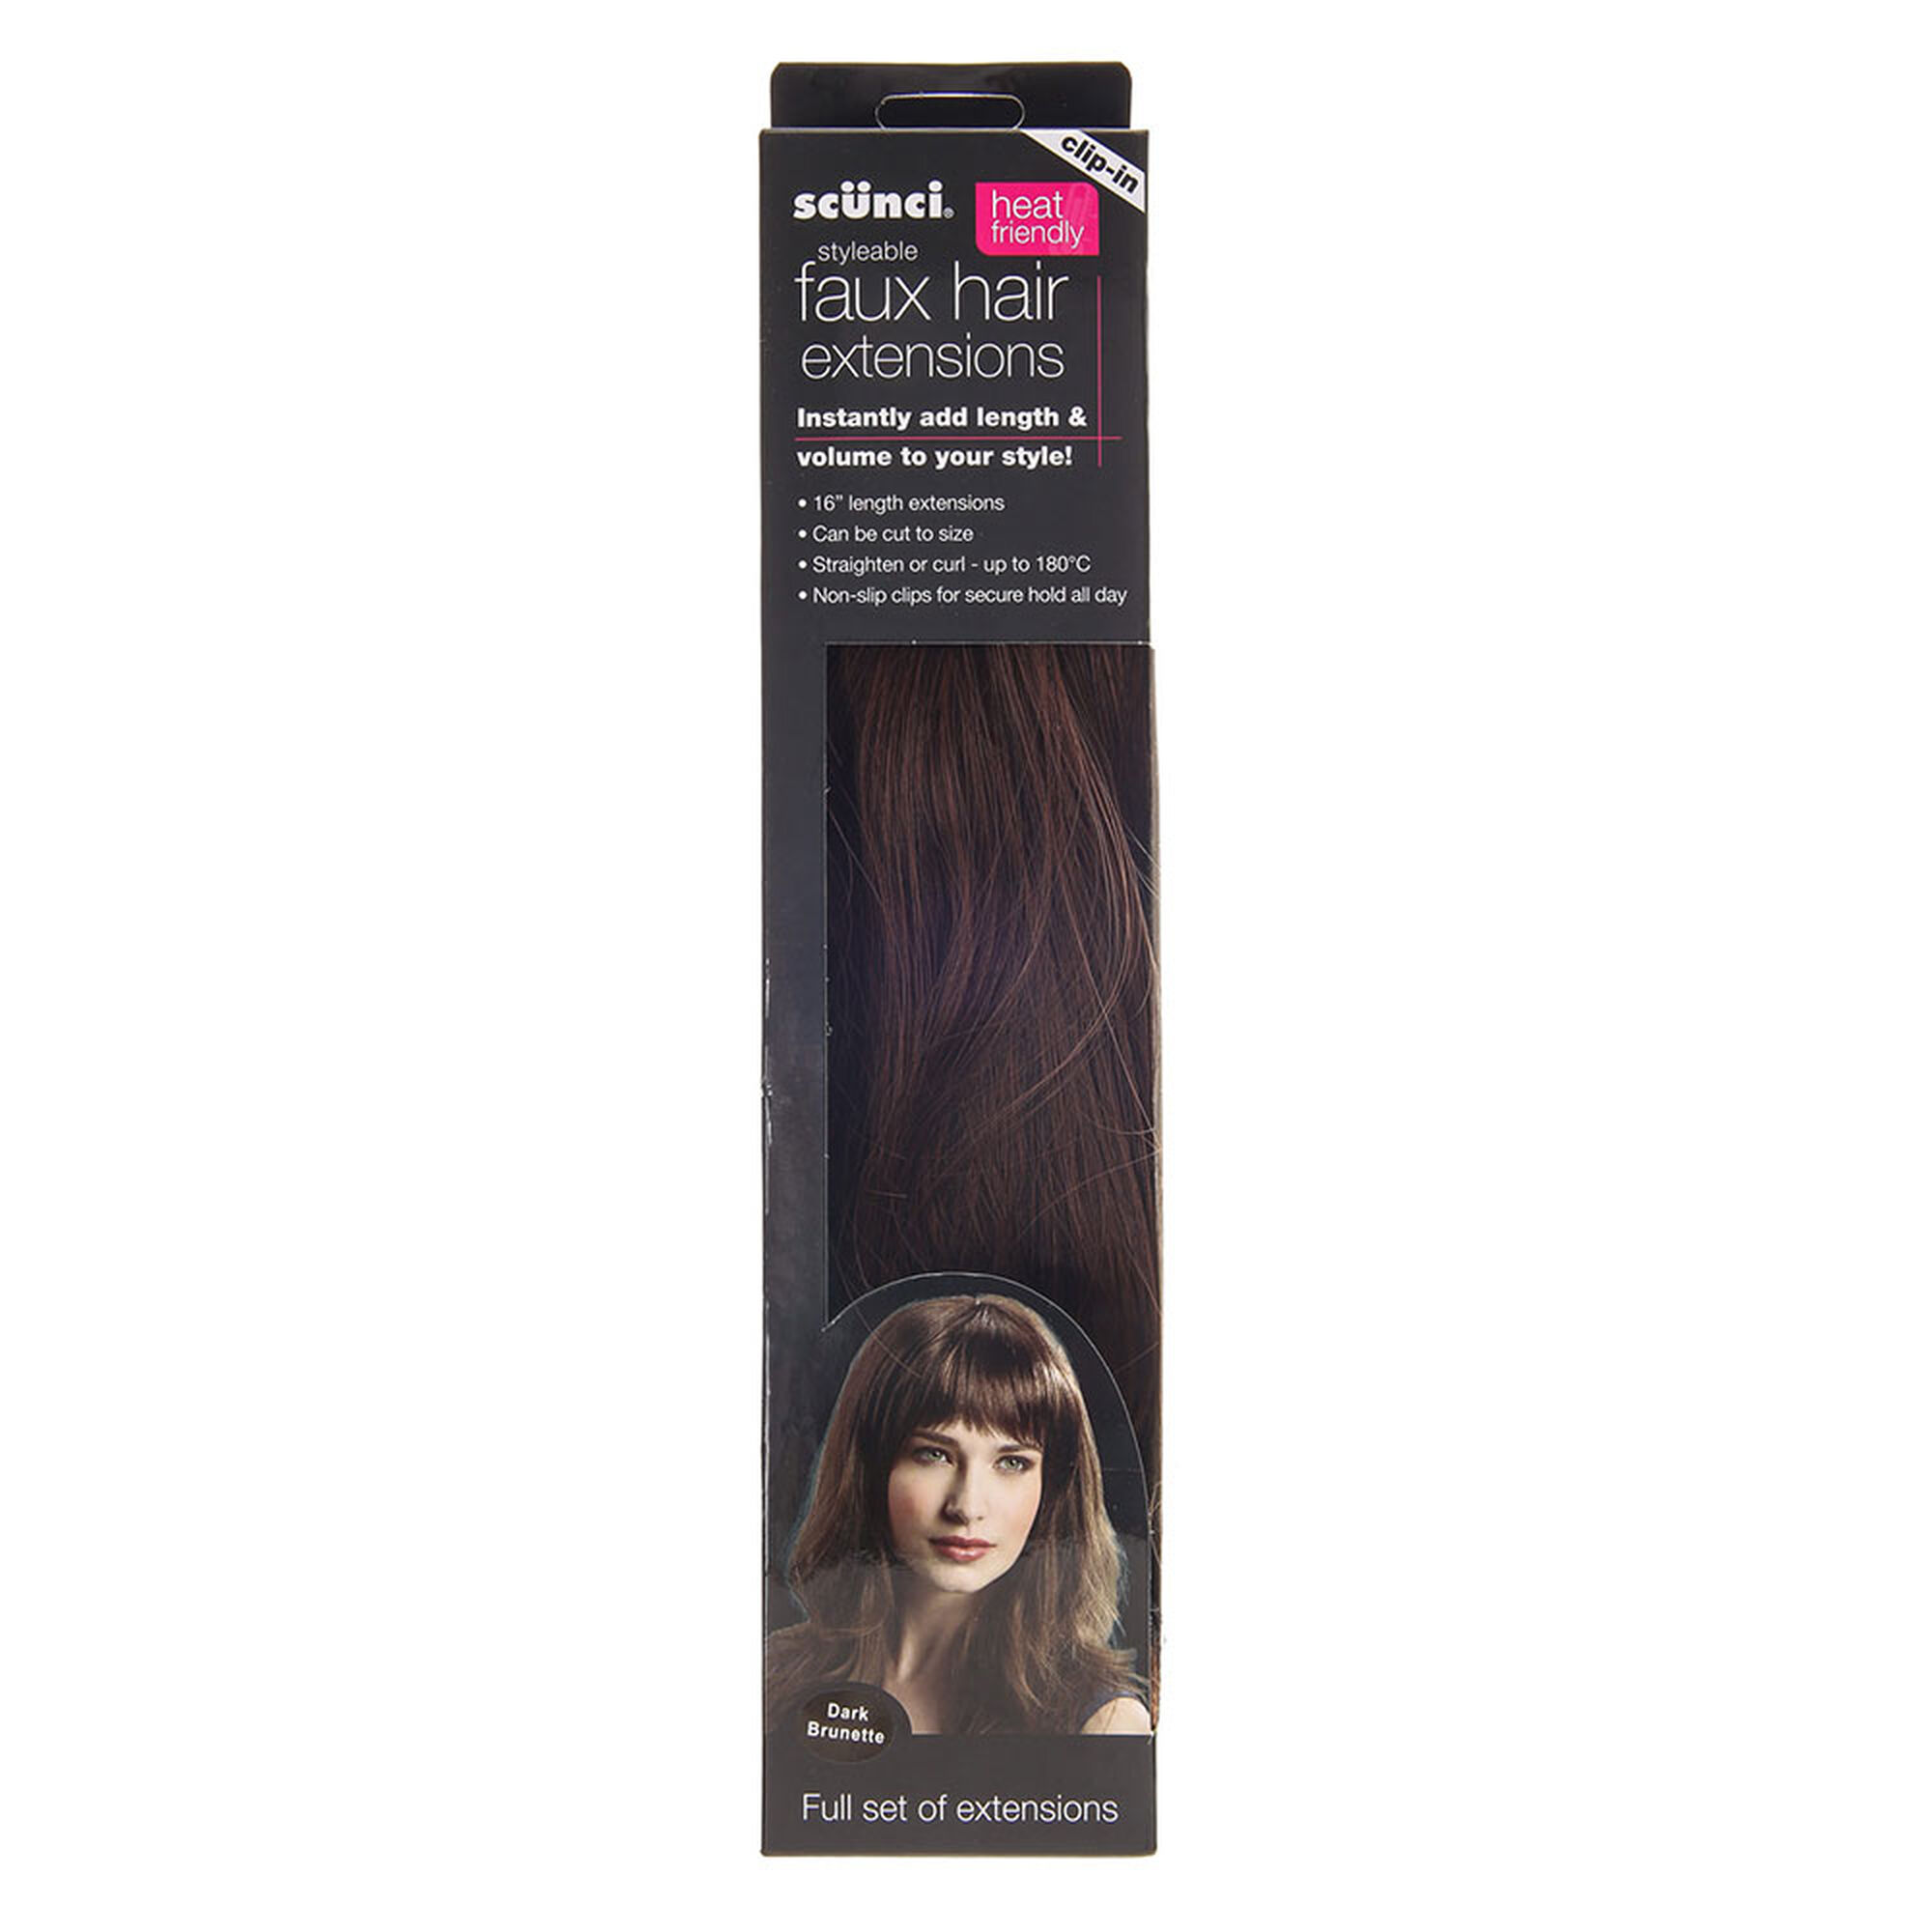 Scunci dark brown faux hair extensions claires scunci dark brown faux hair extensions pmusecretfo Image collections